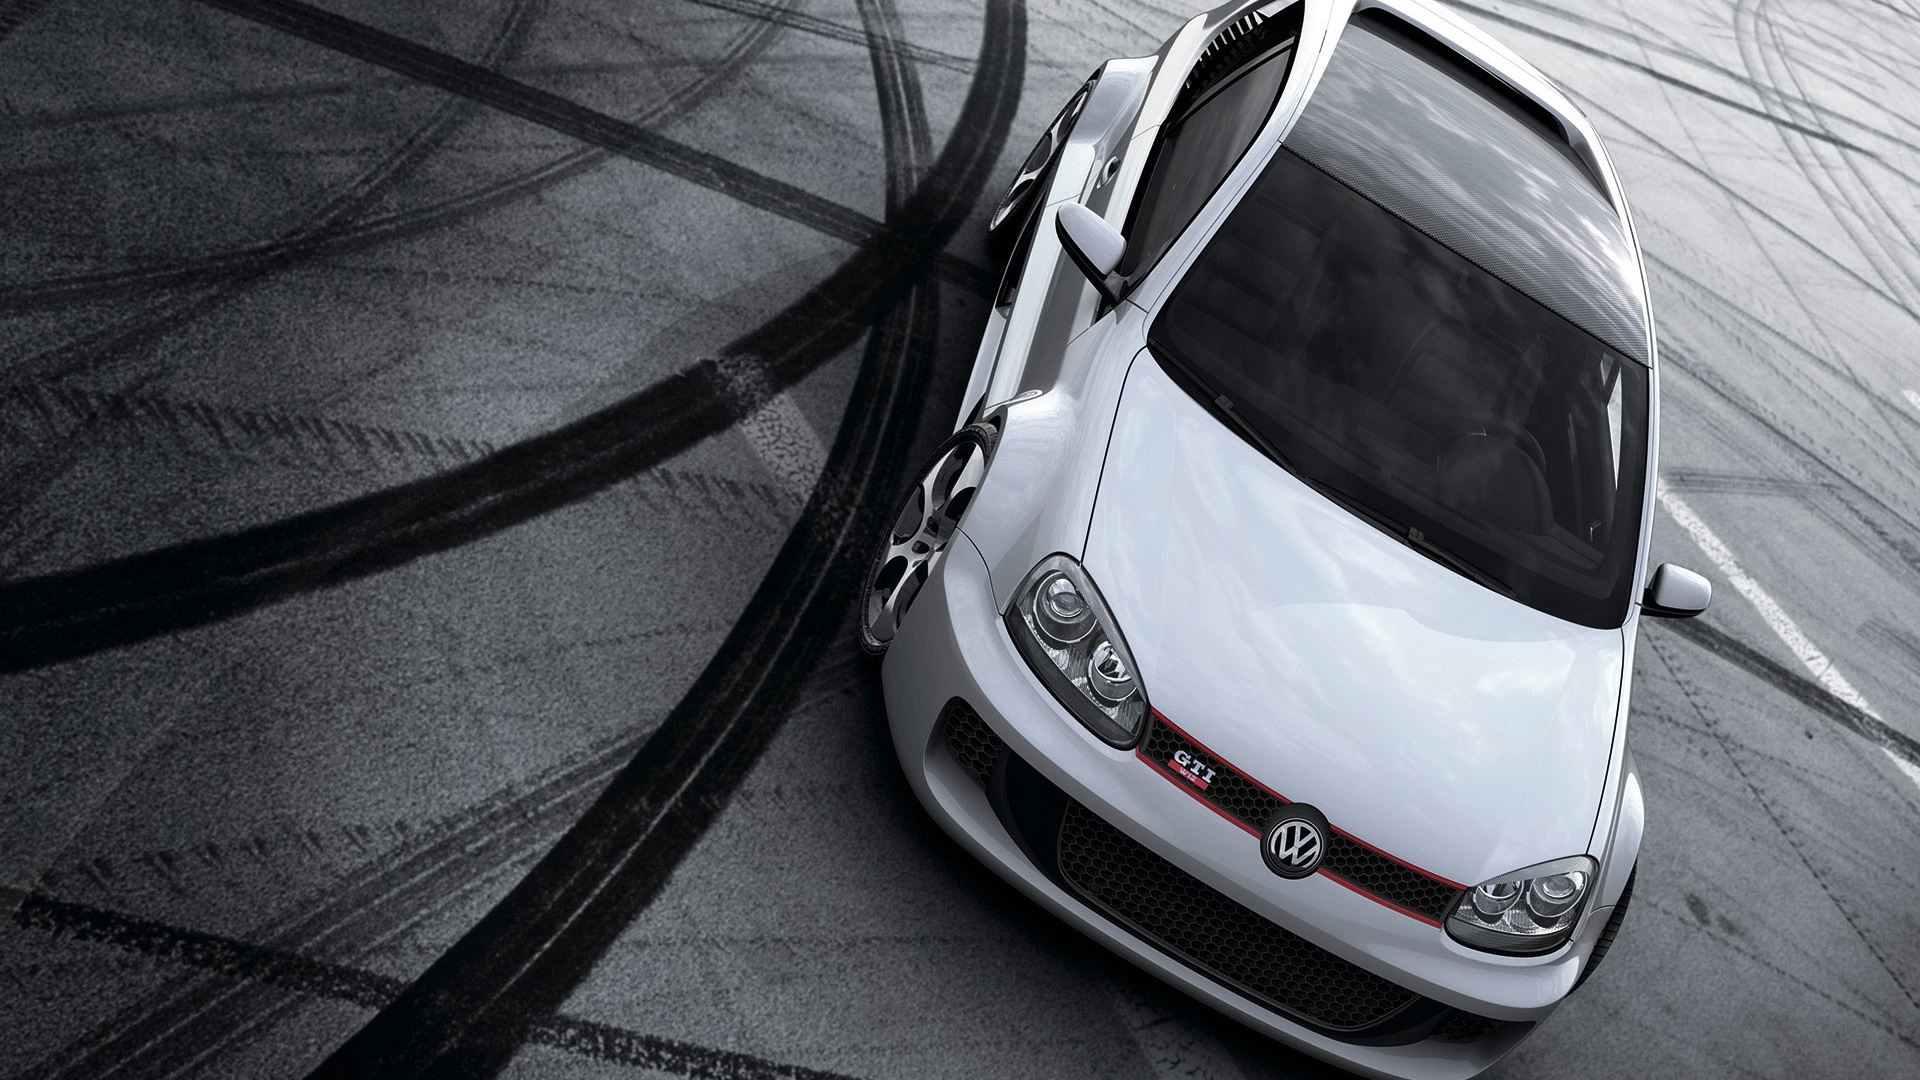 volkswagen golf gti free download